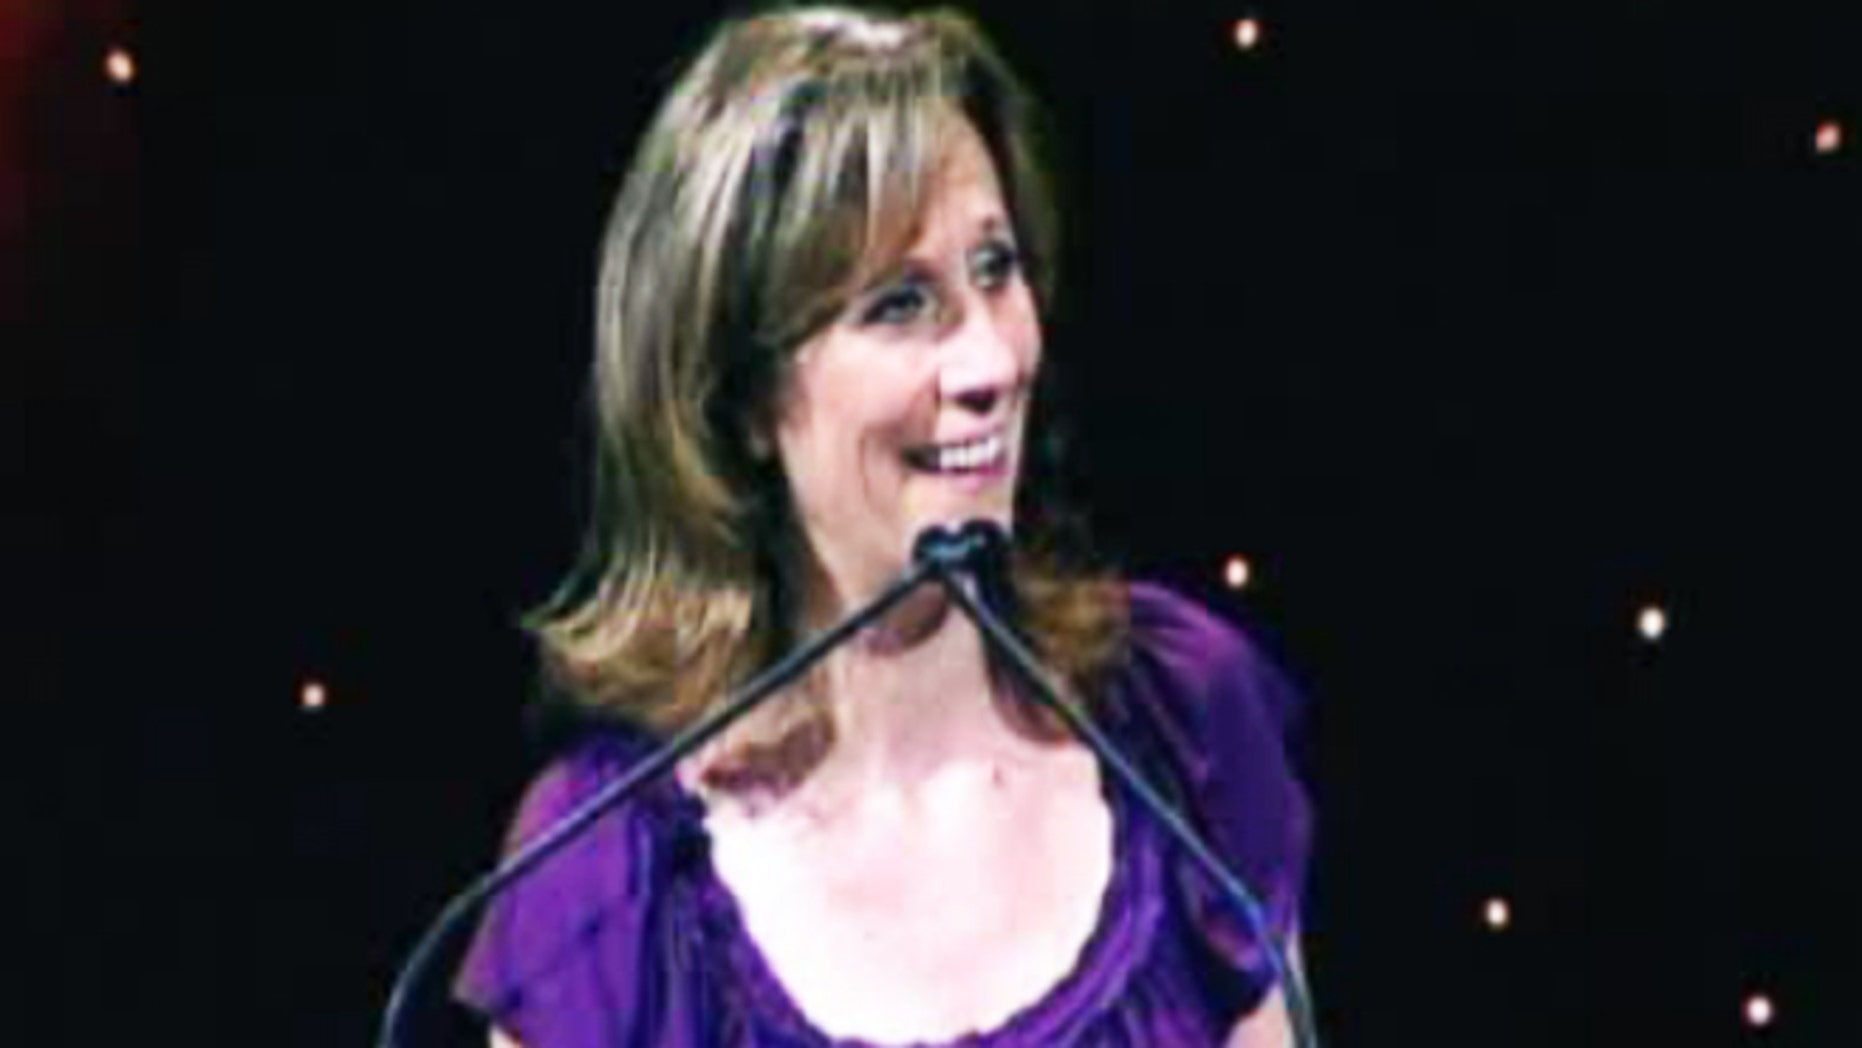 Lizz Winstead performs stand up comedy in videos posted on her official website.